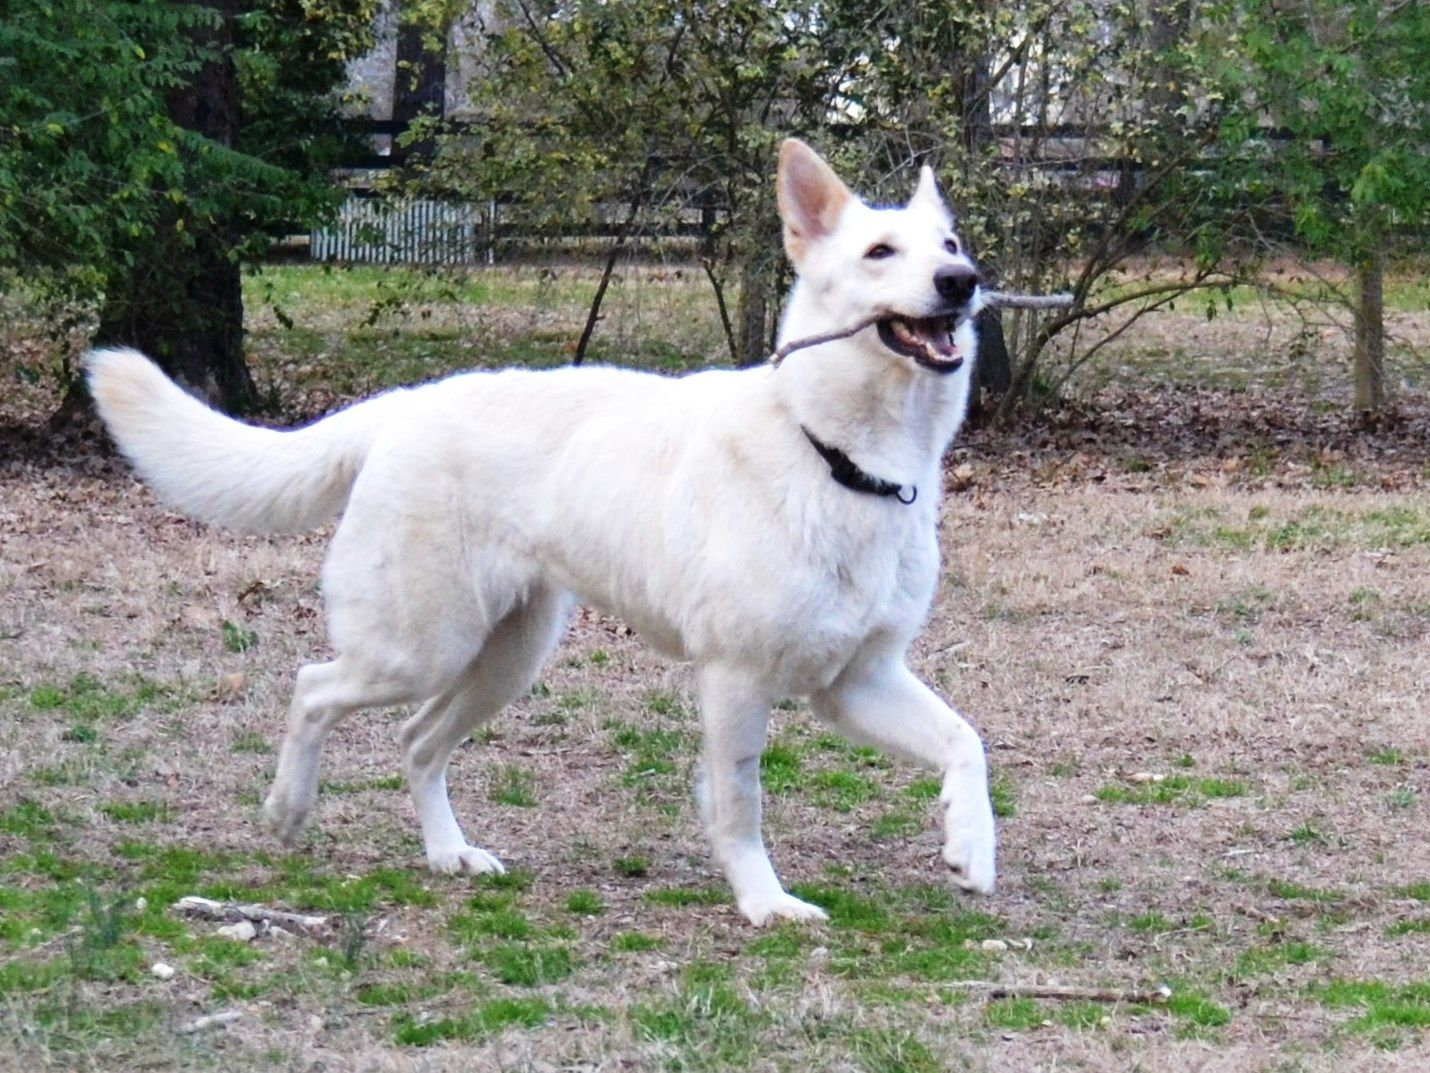 This Is Shiro A Three Year Old White German Shepherd Dog She Is